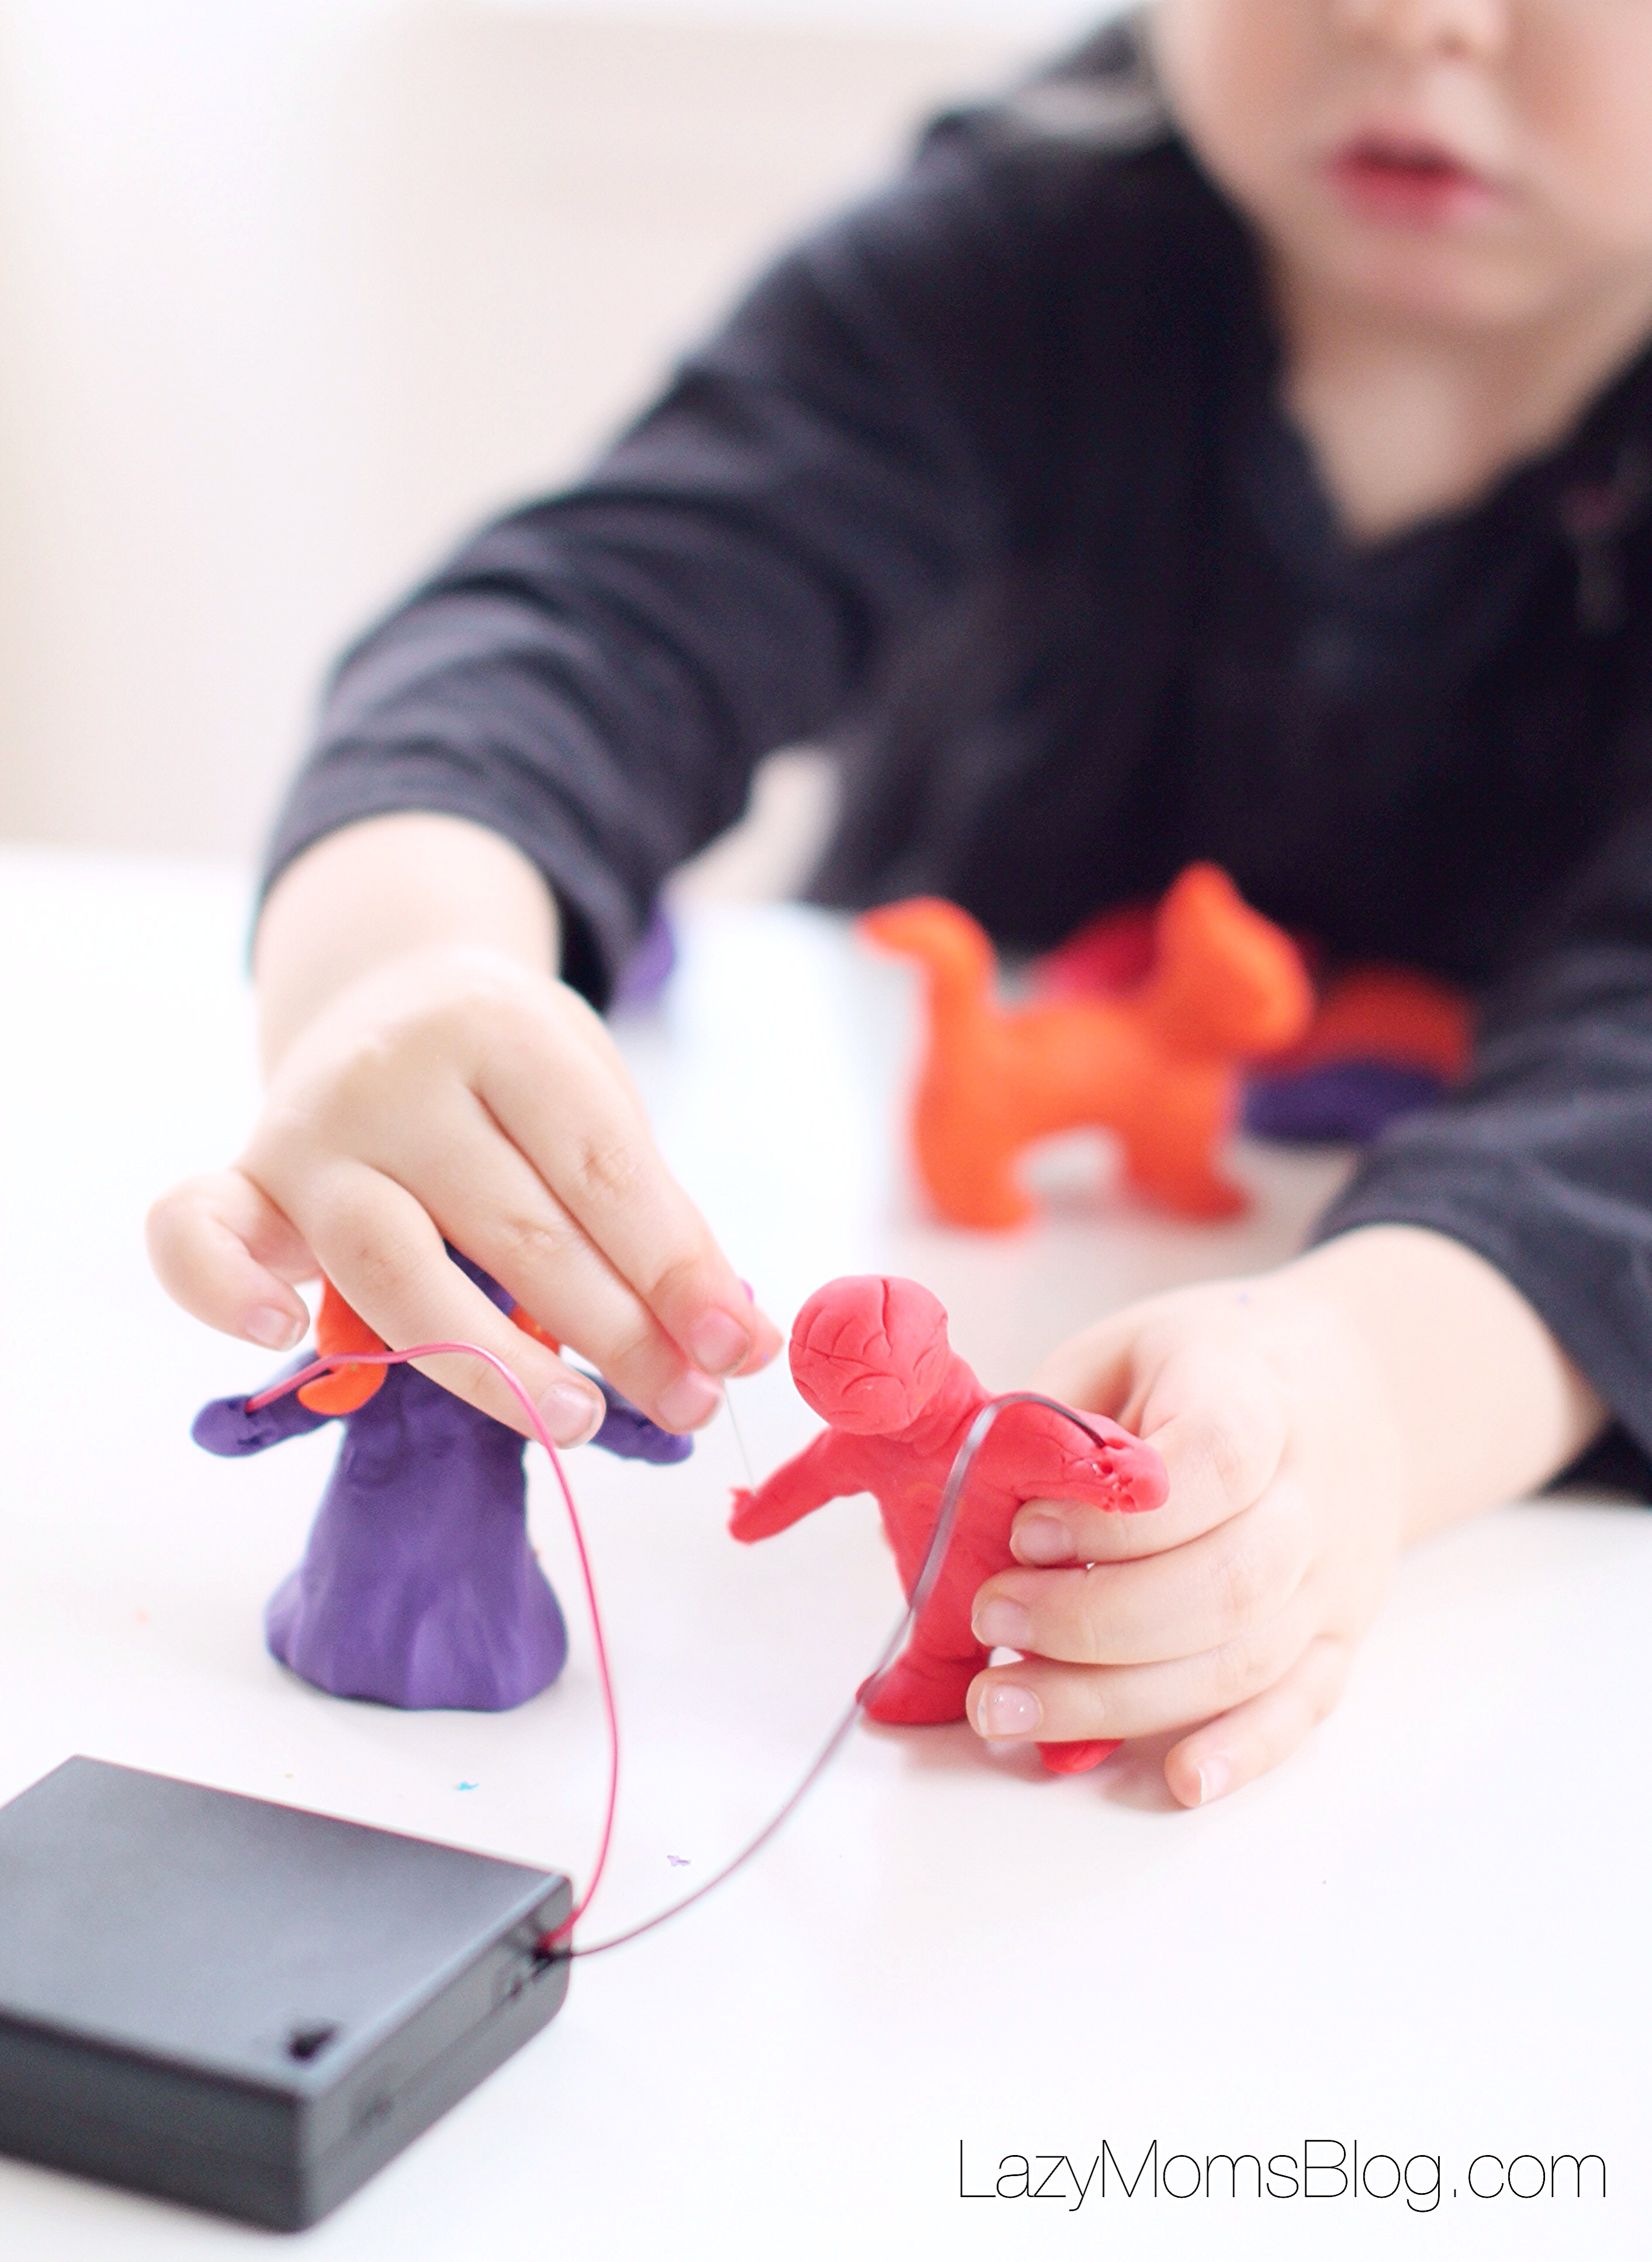 Great kit for experimenting with electricity while playing play dough